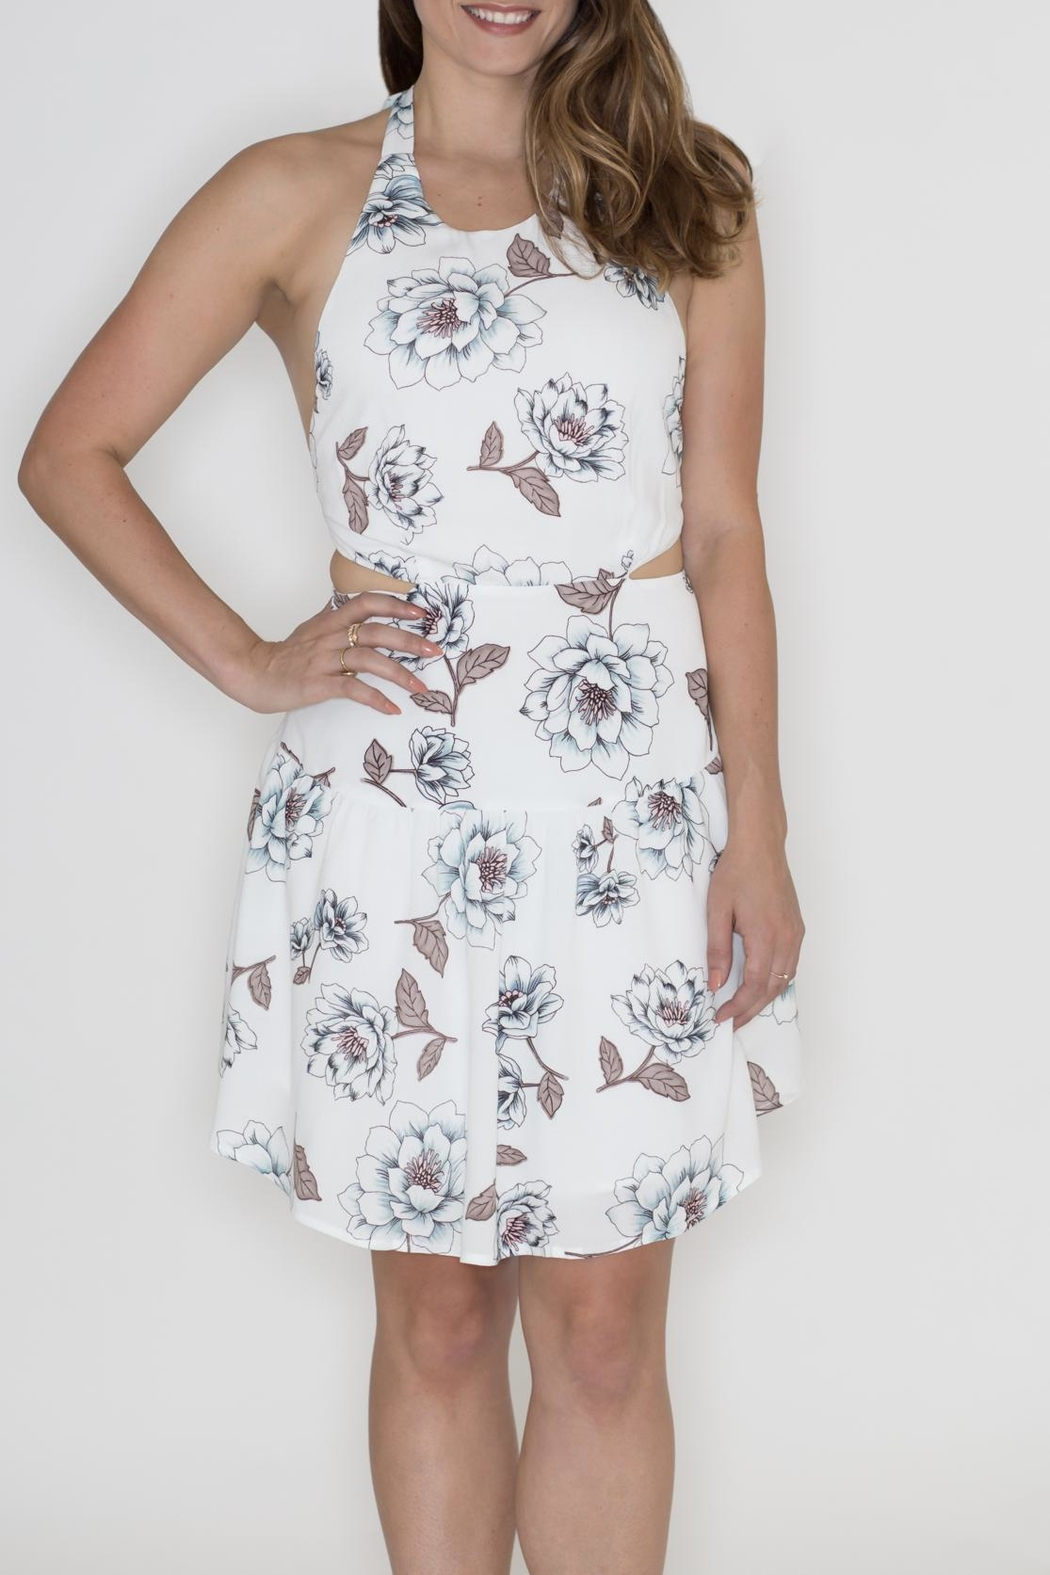 Hommage Floral Cut Out Dress - Main Image